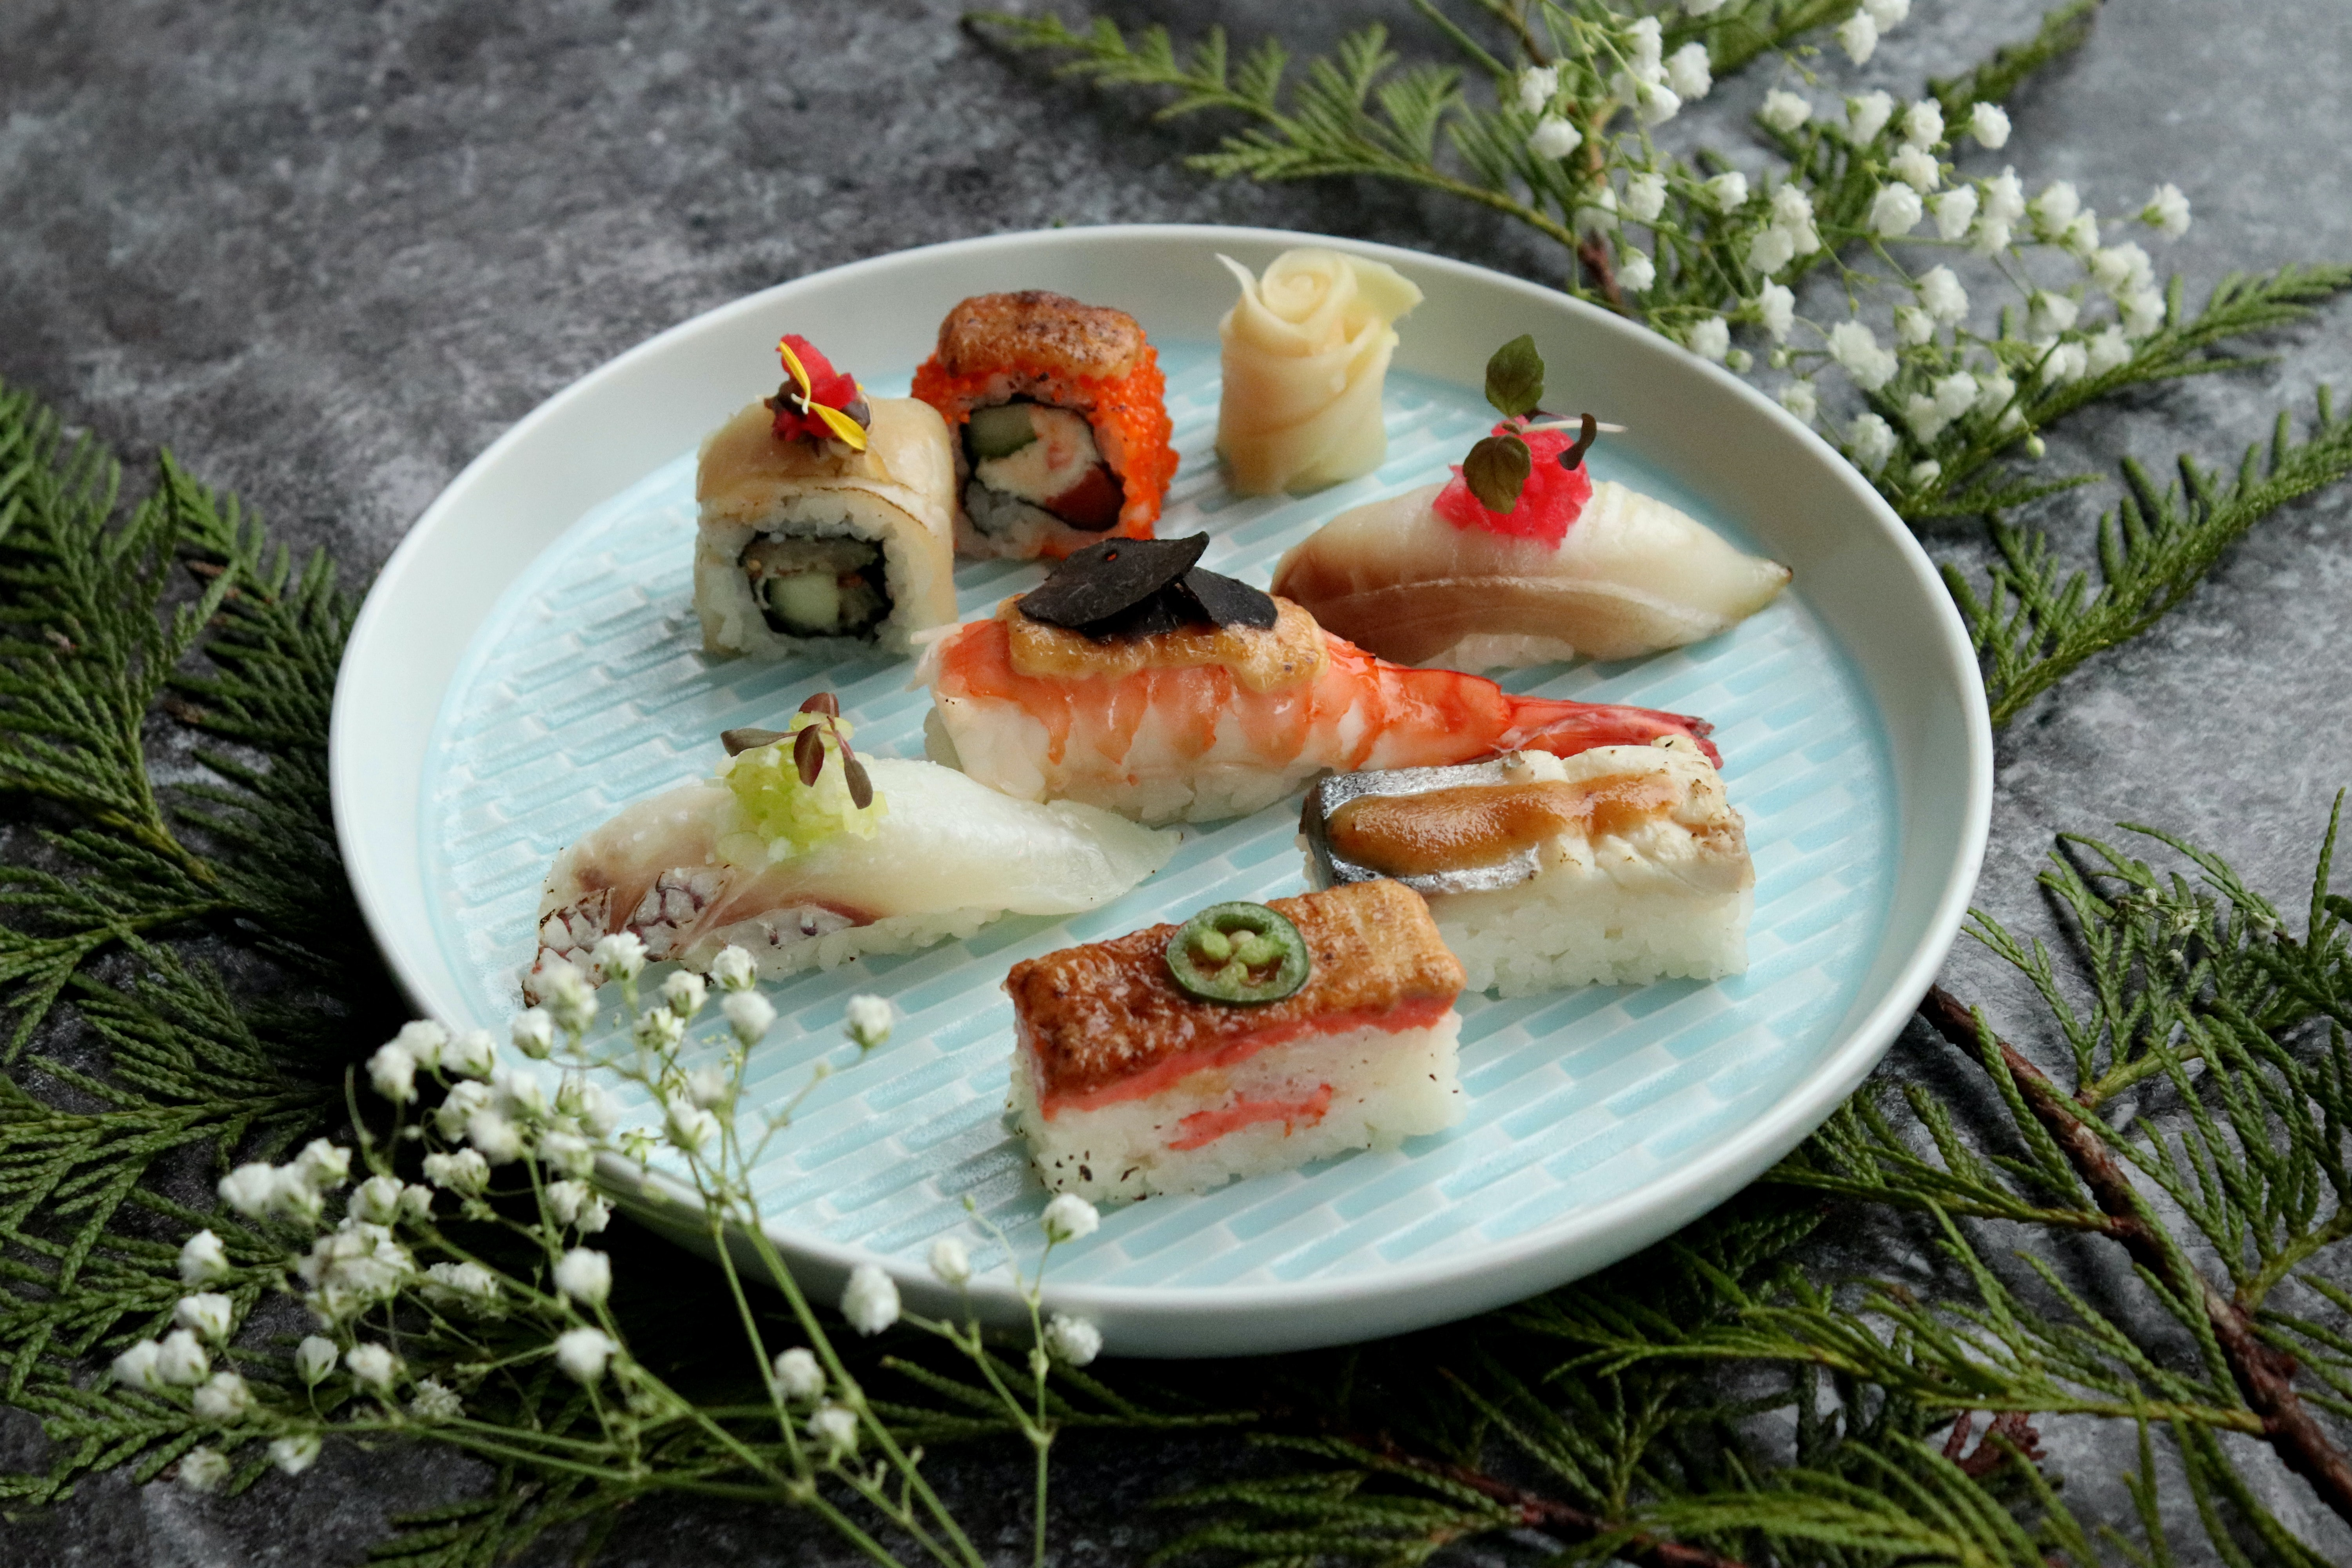 sushis served on white tray